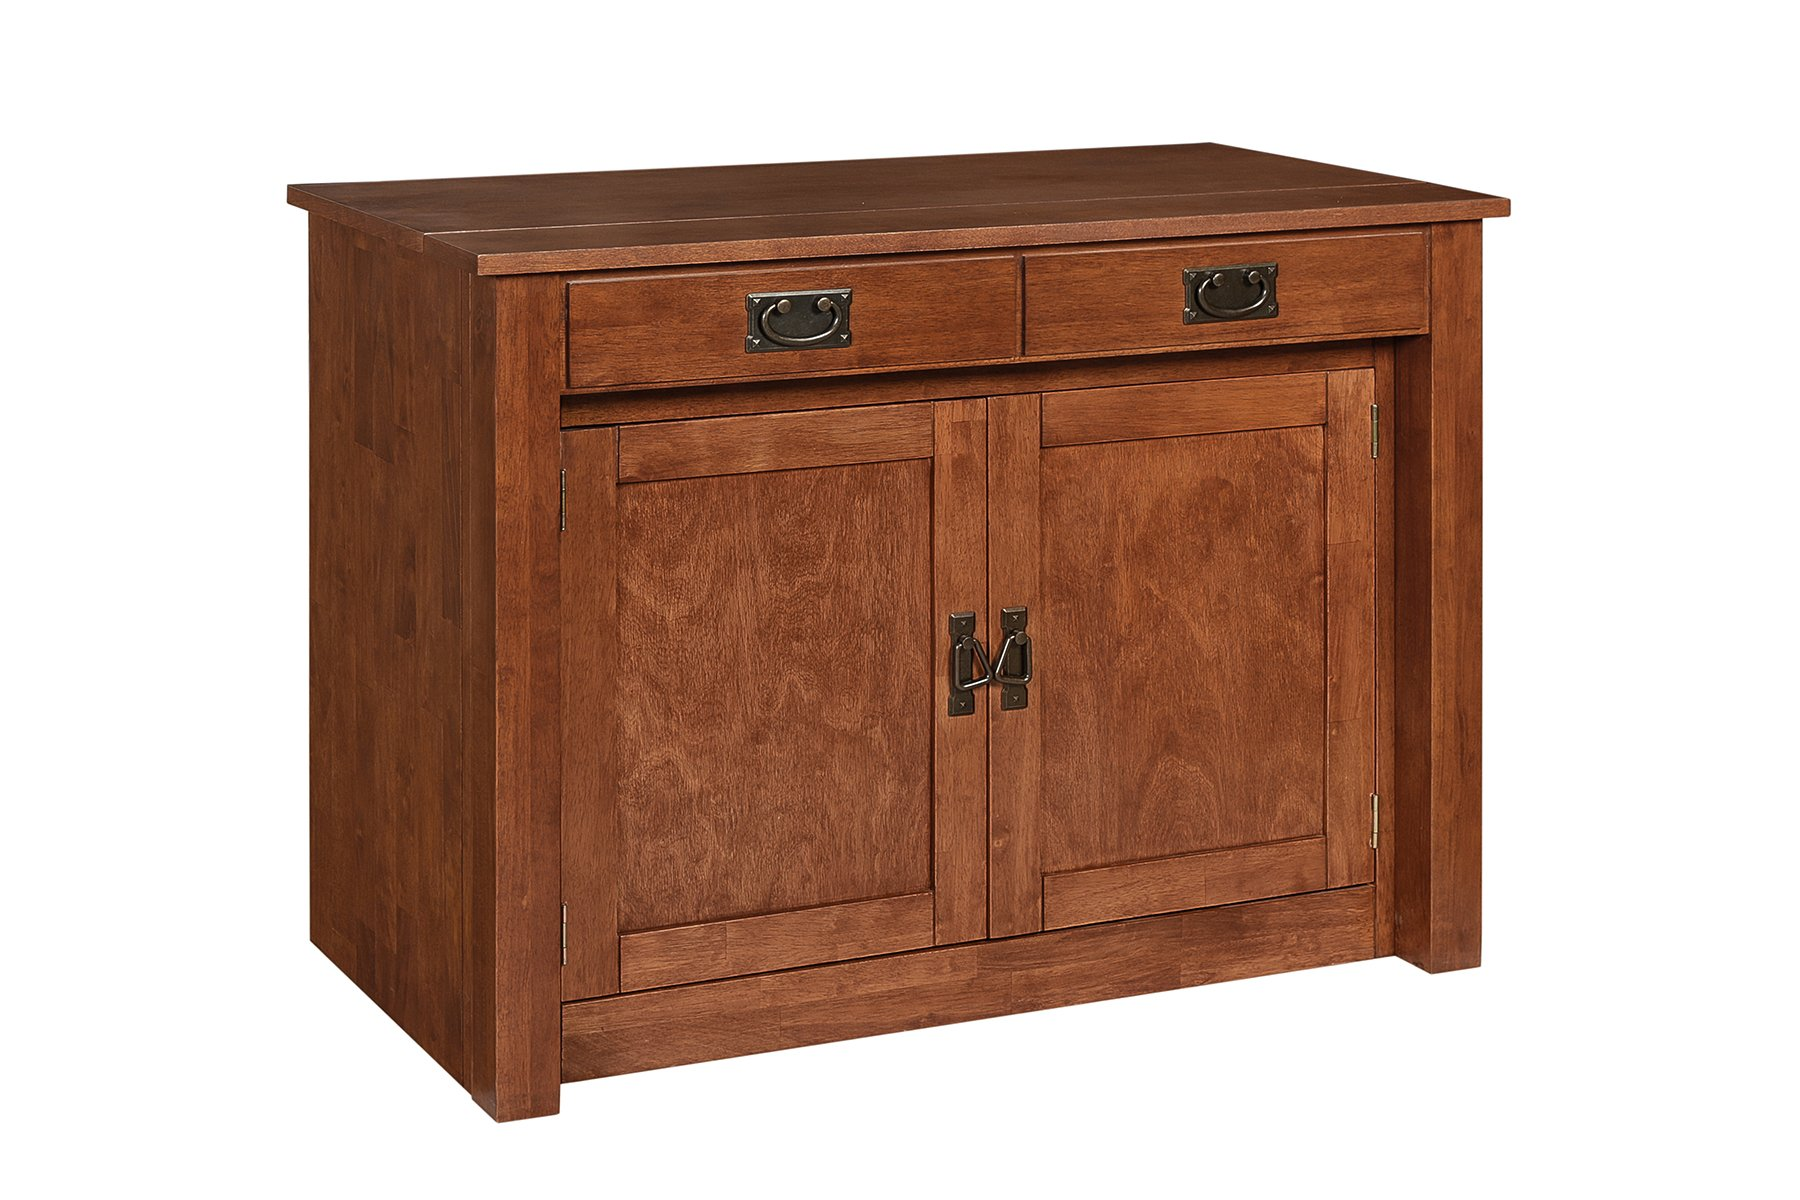 Stakmore Expanding Cabinet Finish, Fruitwood by MECO